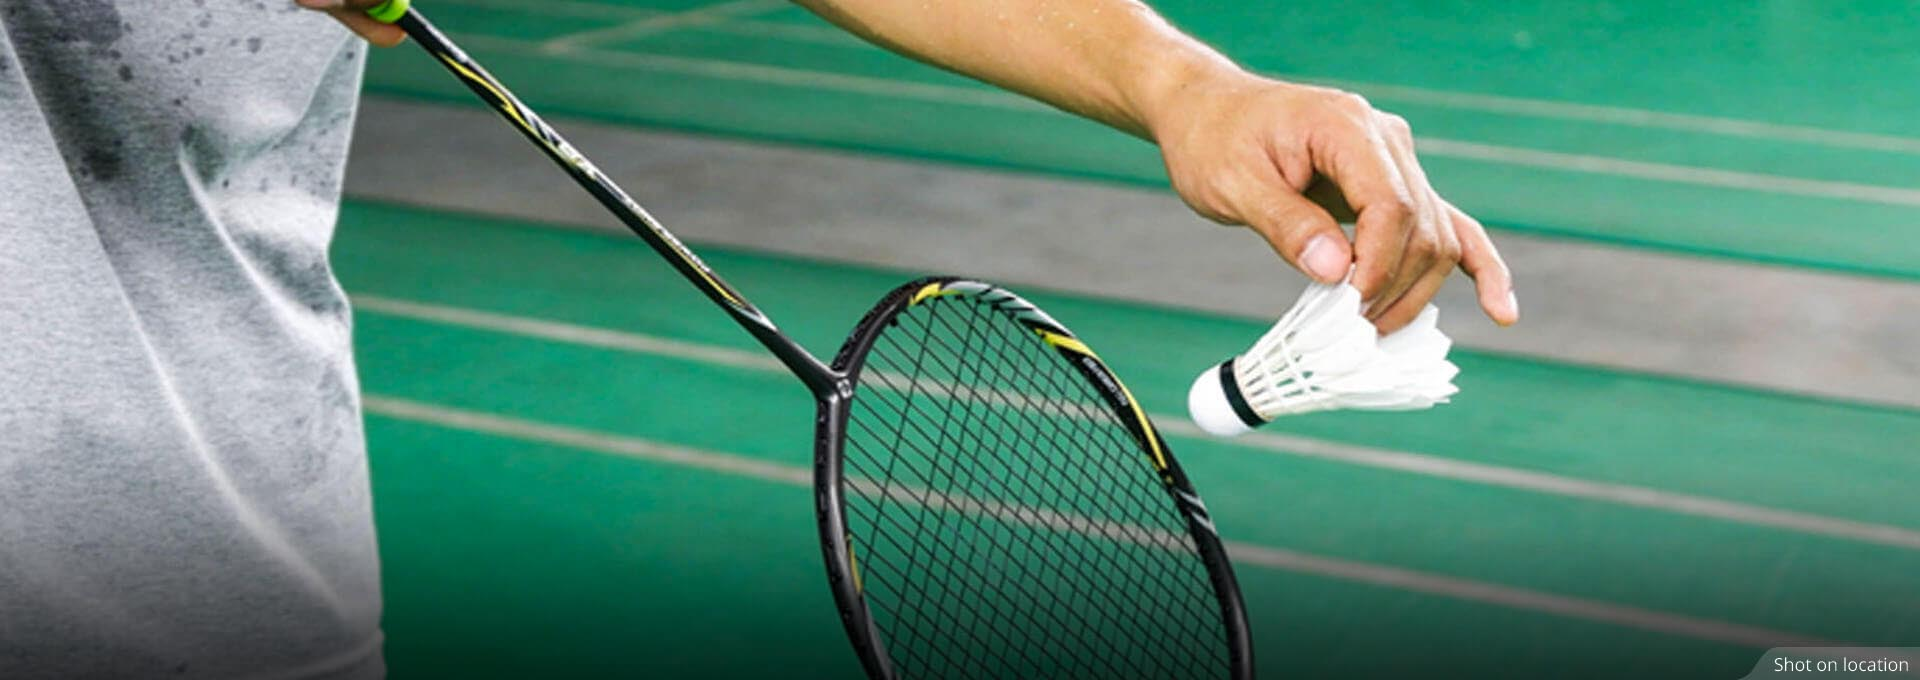 Badminton in Queensgate by House of Hirandani in Bannerghatta, Bengaluru